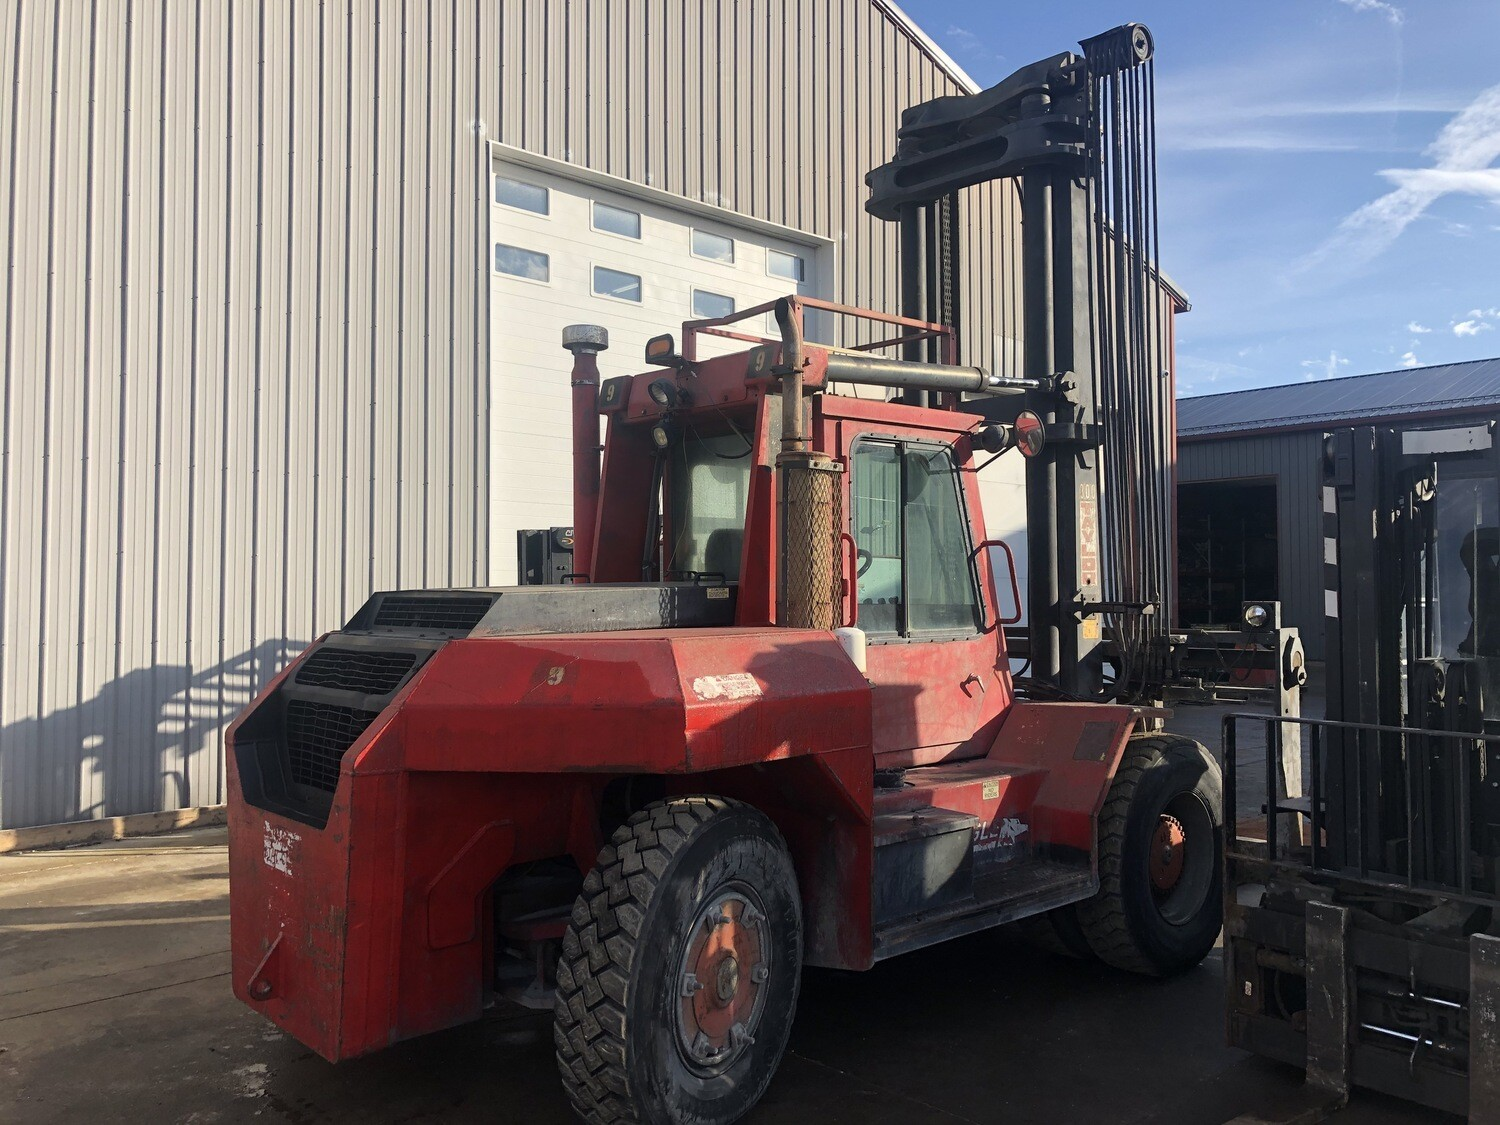 15 Ton Taylor Forklift For Sale - Big Red